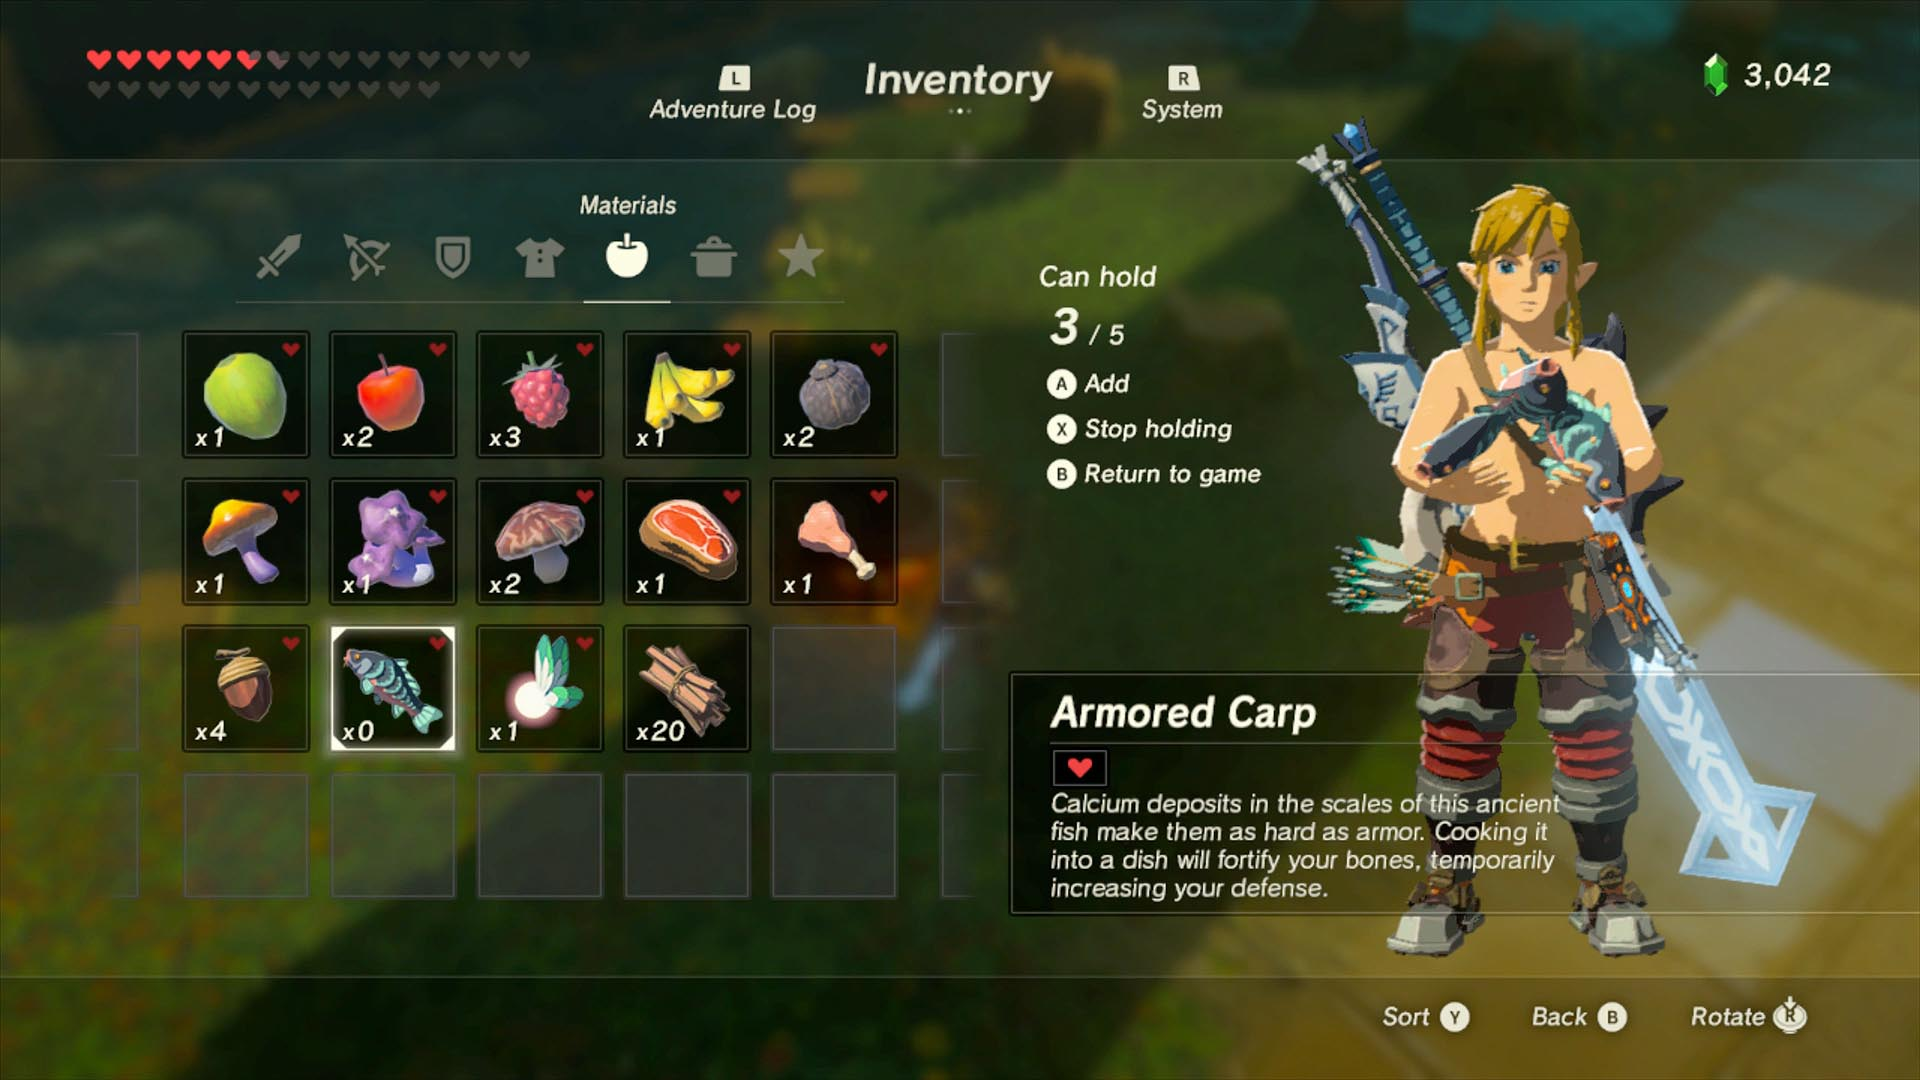 Zelda breath of the wild guide the master trials trial of the theres one fairy at the back of the room crouch and go retrieve it you can cook with it if you really want to but its probably best to keep in your forumfinder Images